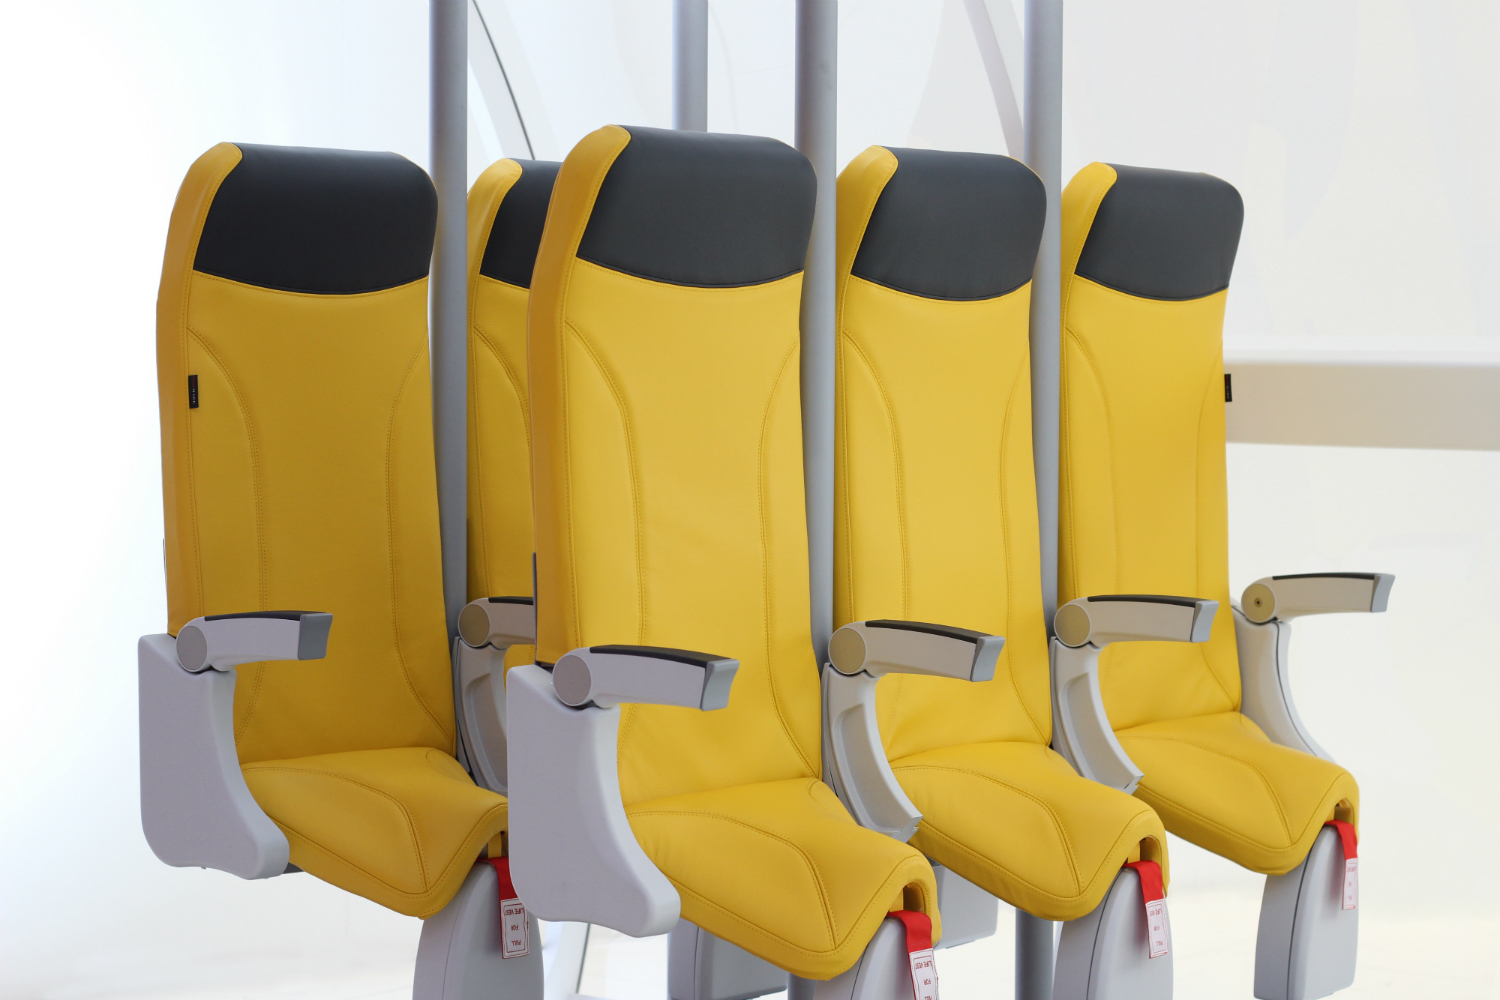 New 'upright' aircraft seat 'could boost passenger numbers 20%'